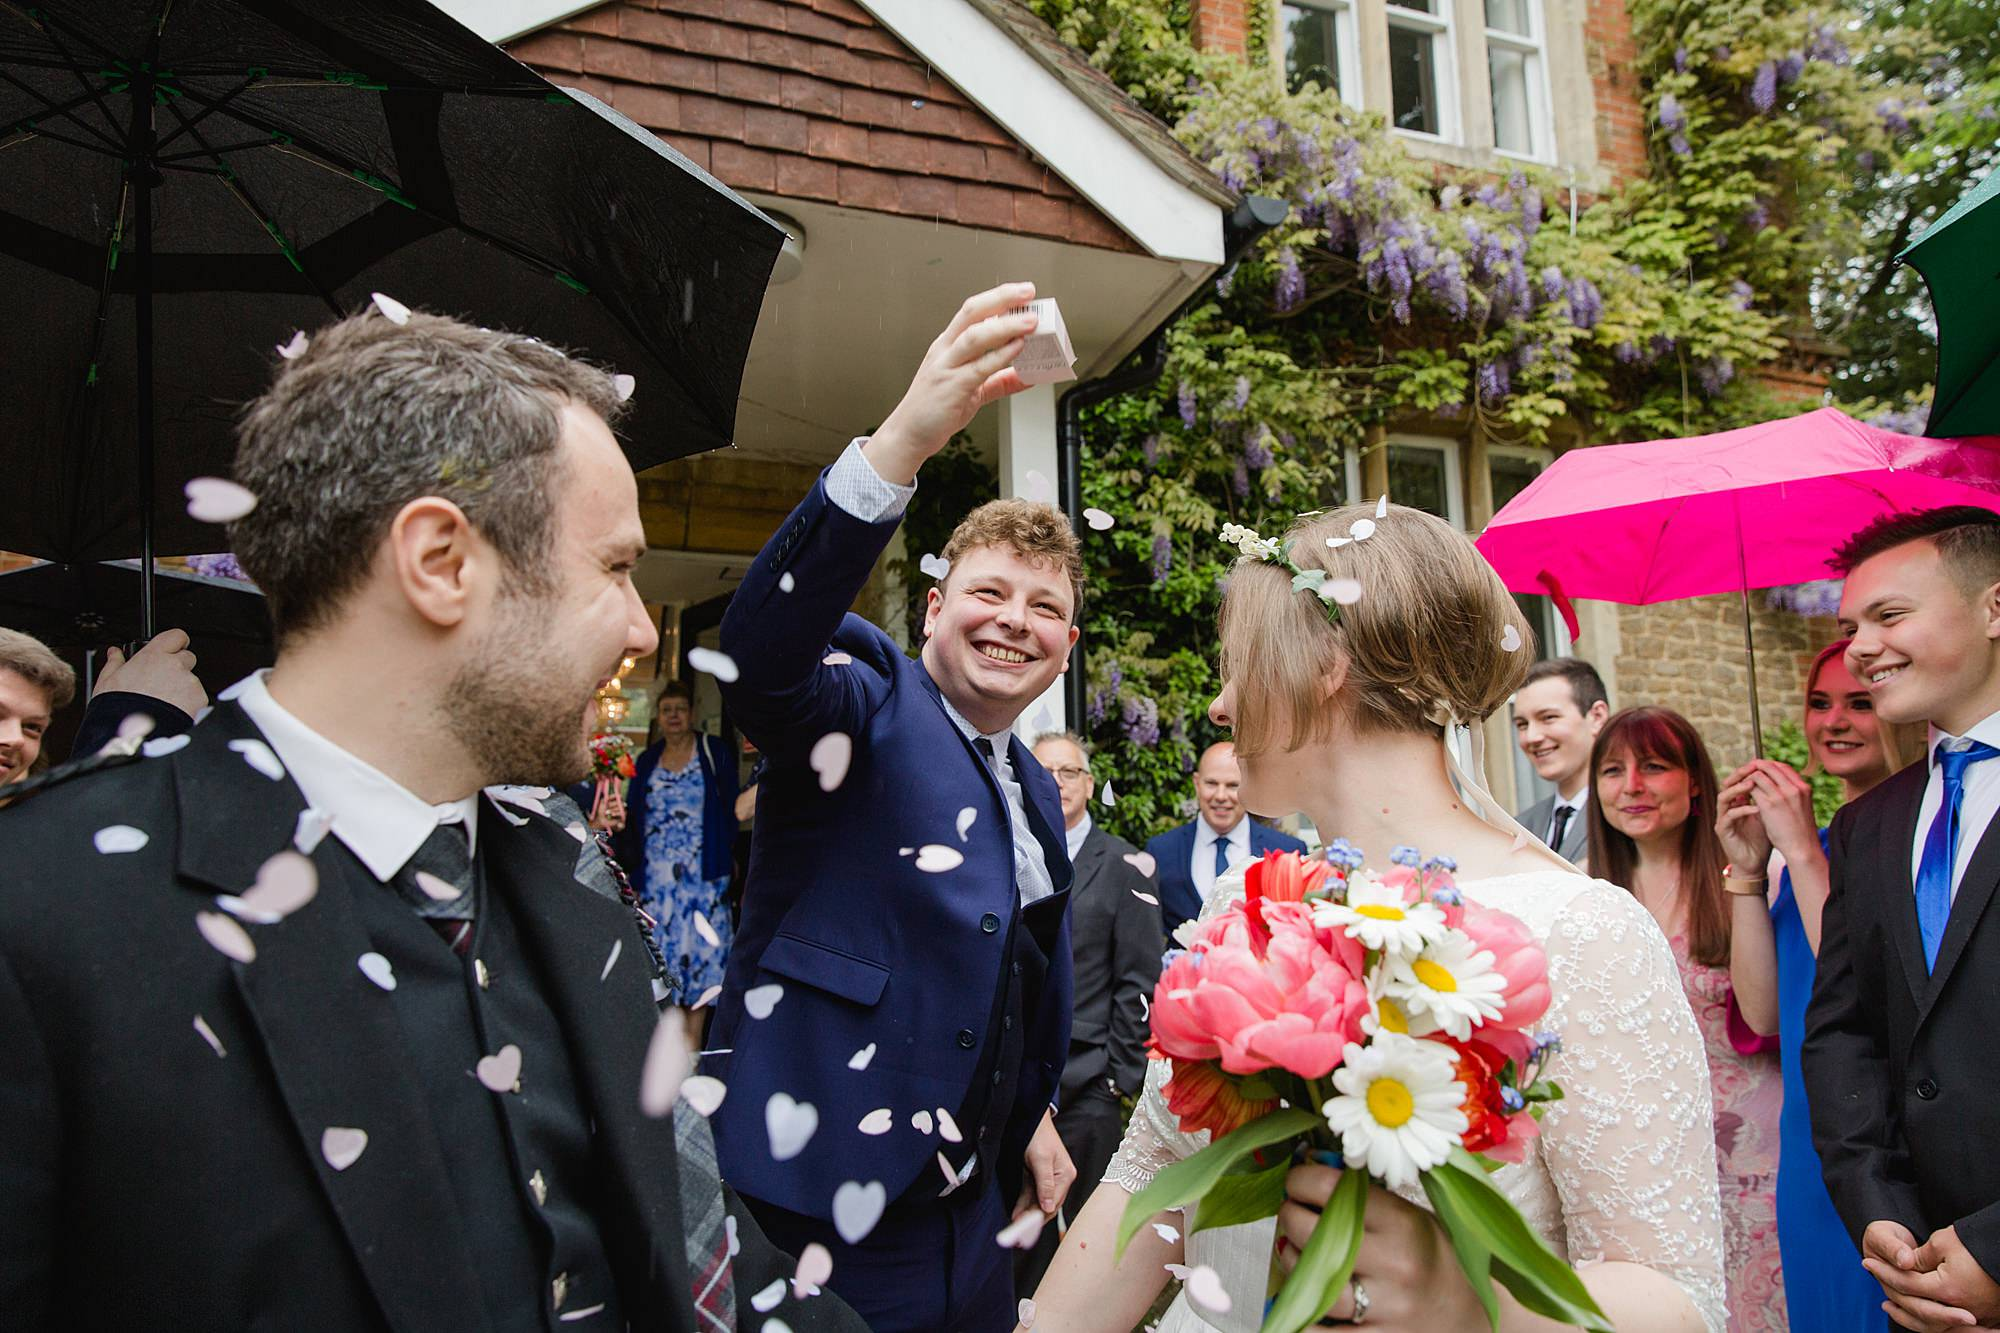 wedding guest dumps confetti on groom and bride after wedding ceremony